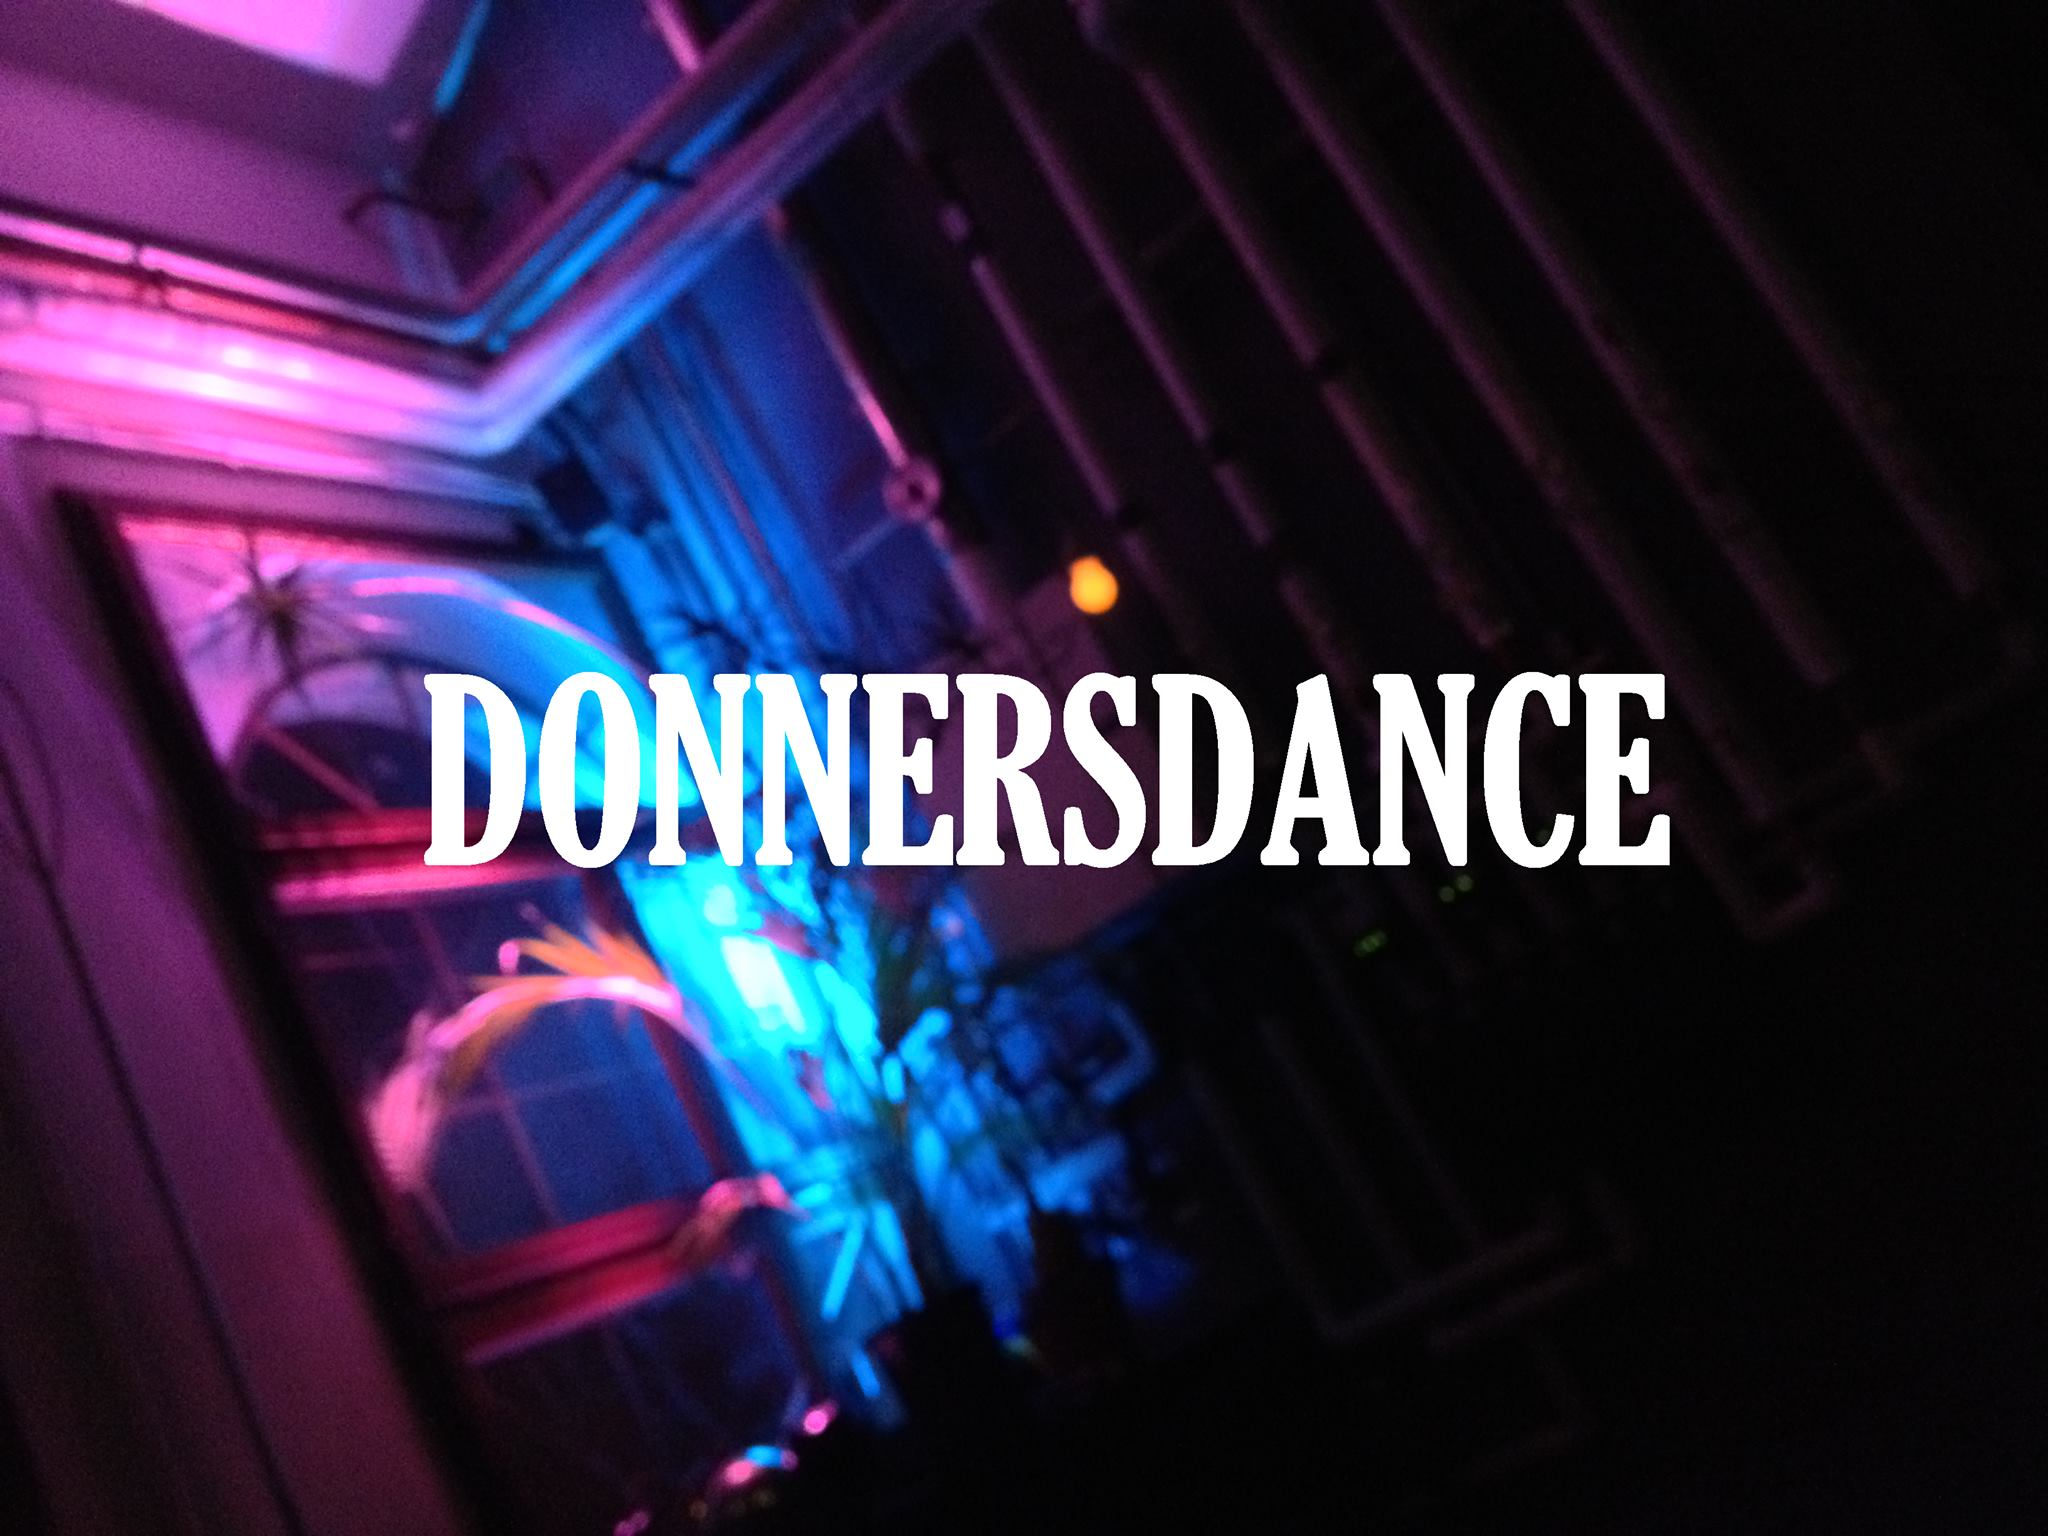 Donnersdance - WarmUp